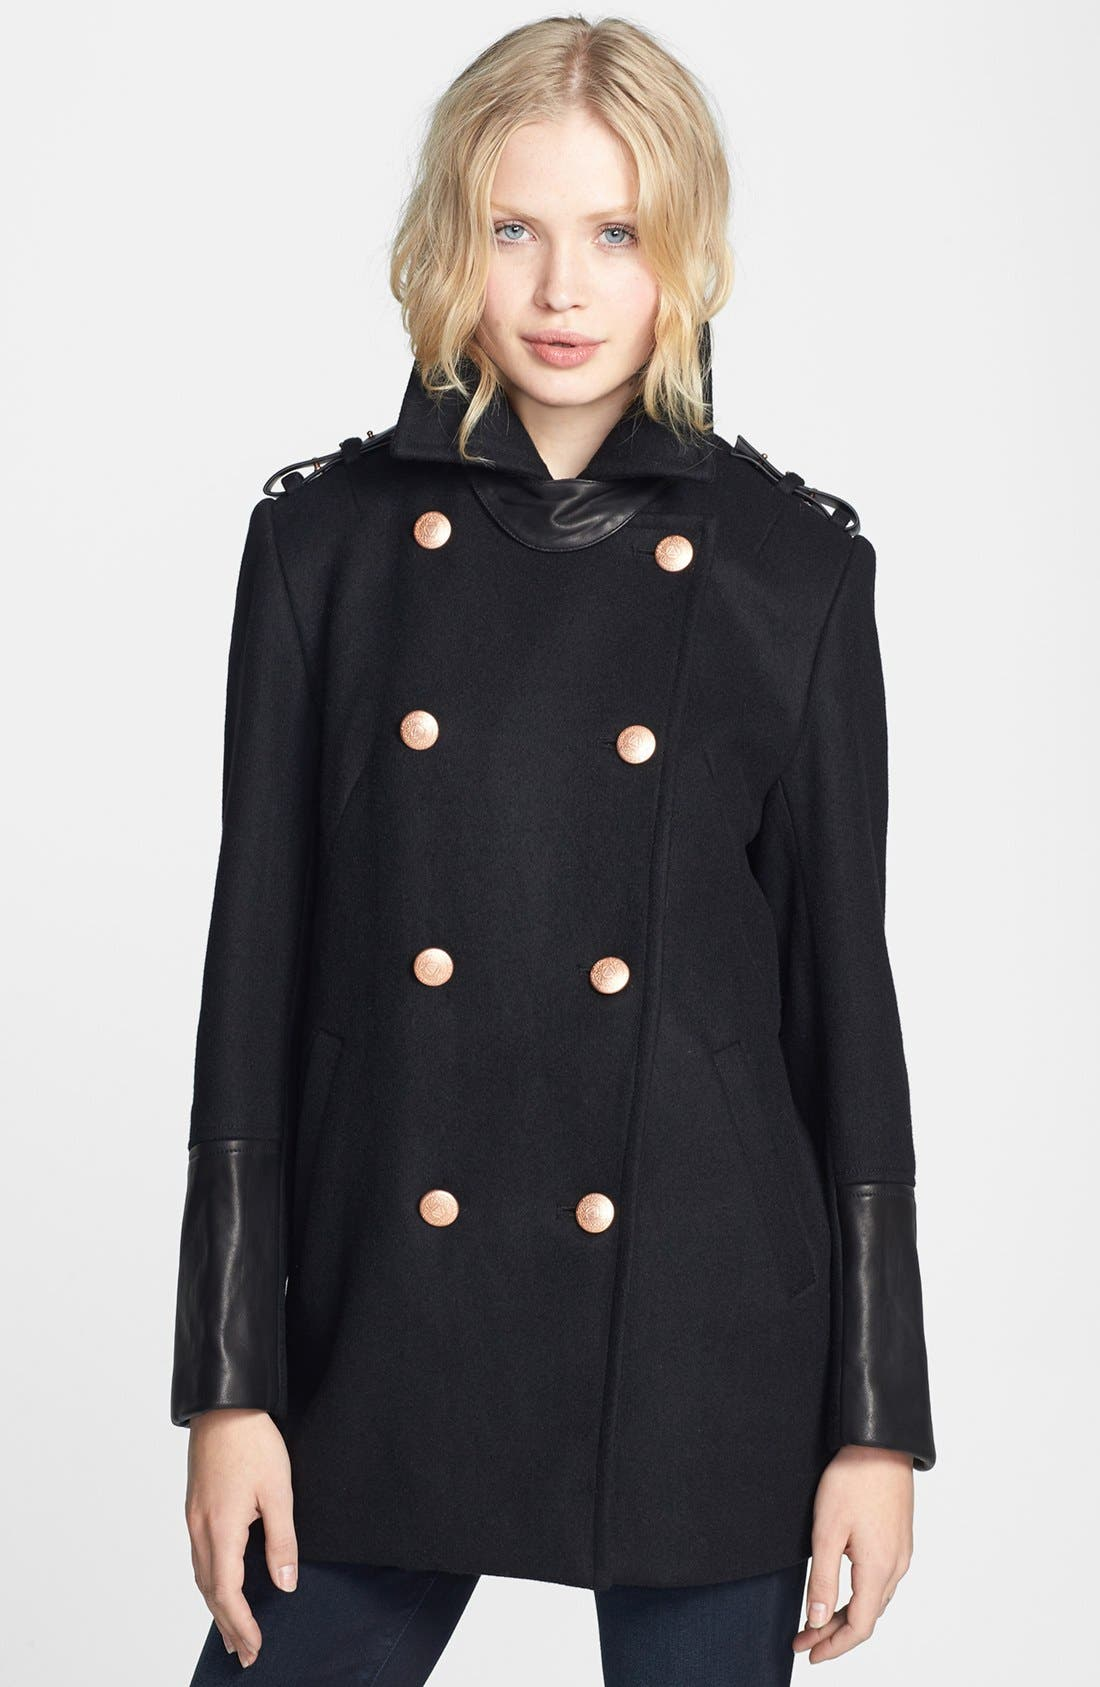 Alternate Image 1 Selected - ELEVENPARIS 'Tchad' Wool Blend Military Peacoat